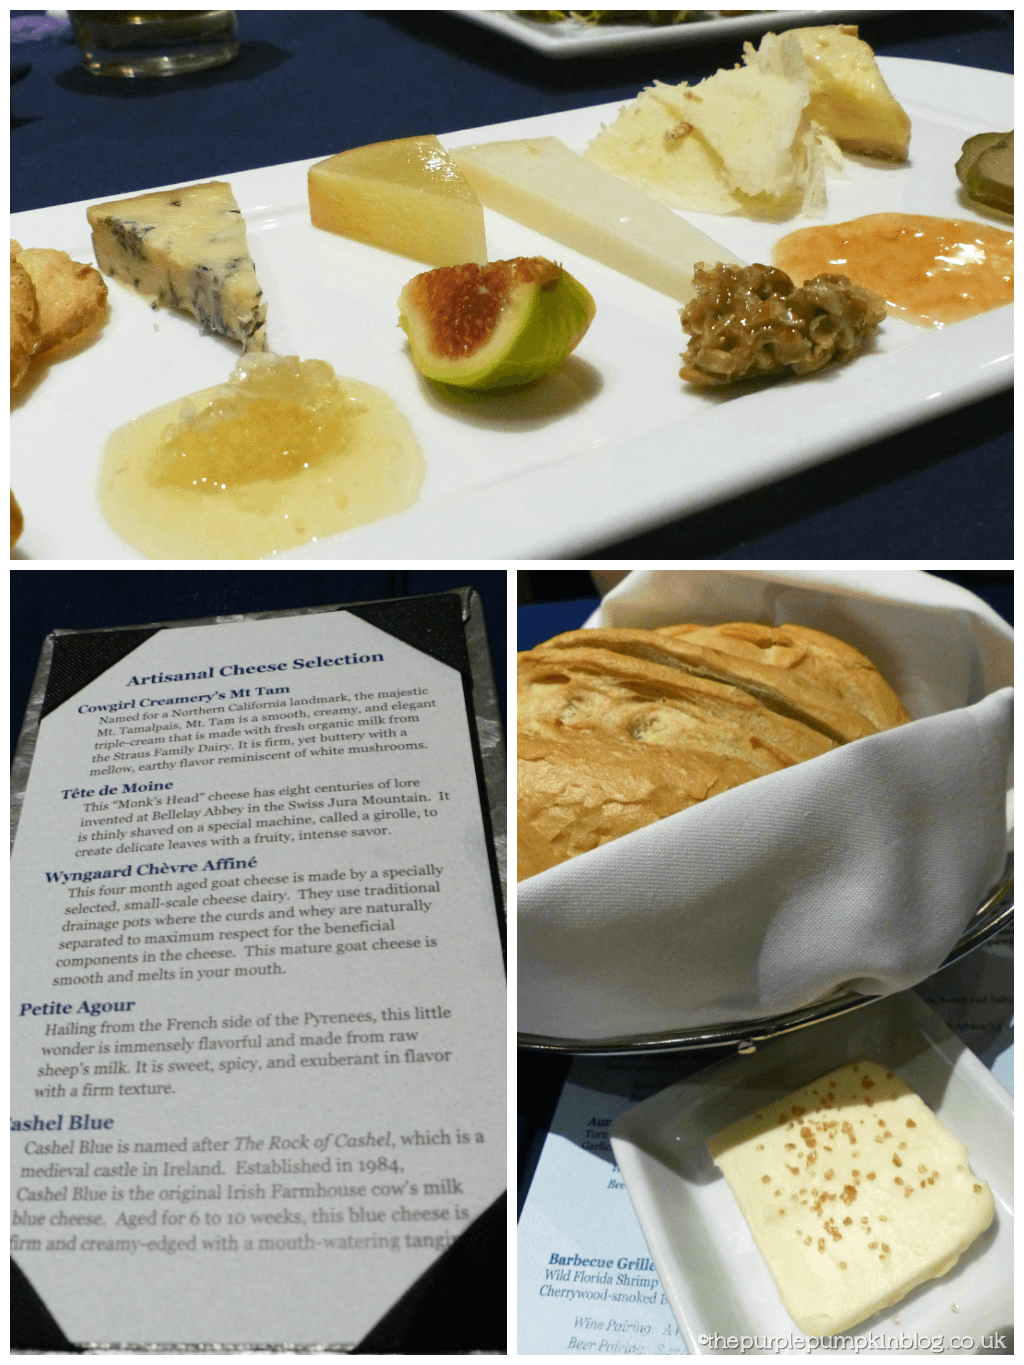 Narcoossees Artisanal Cheese Plate Appetizer